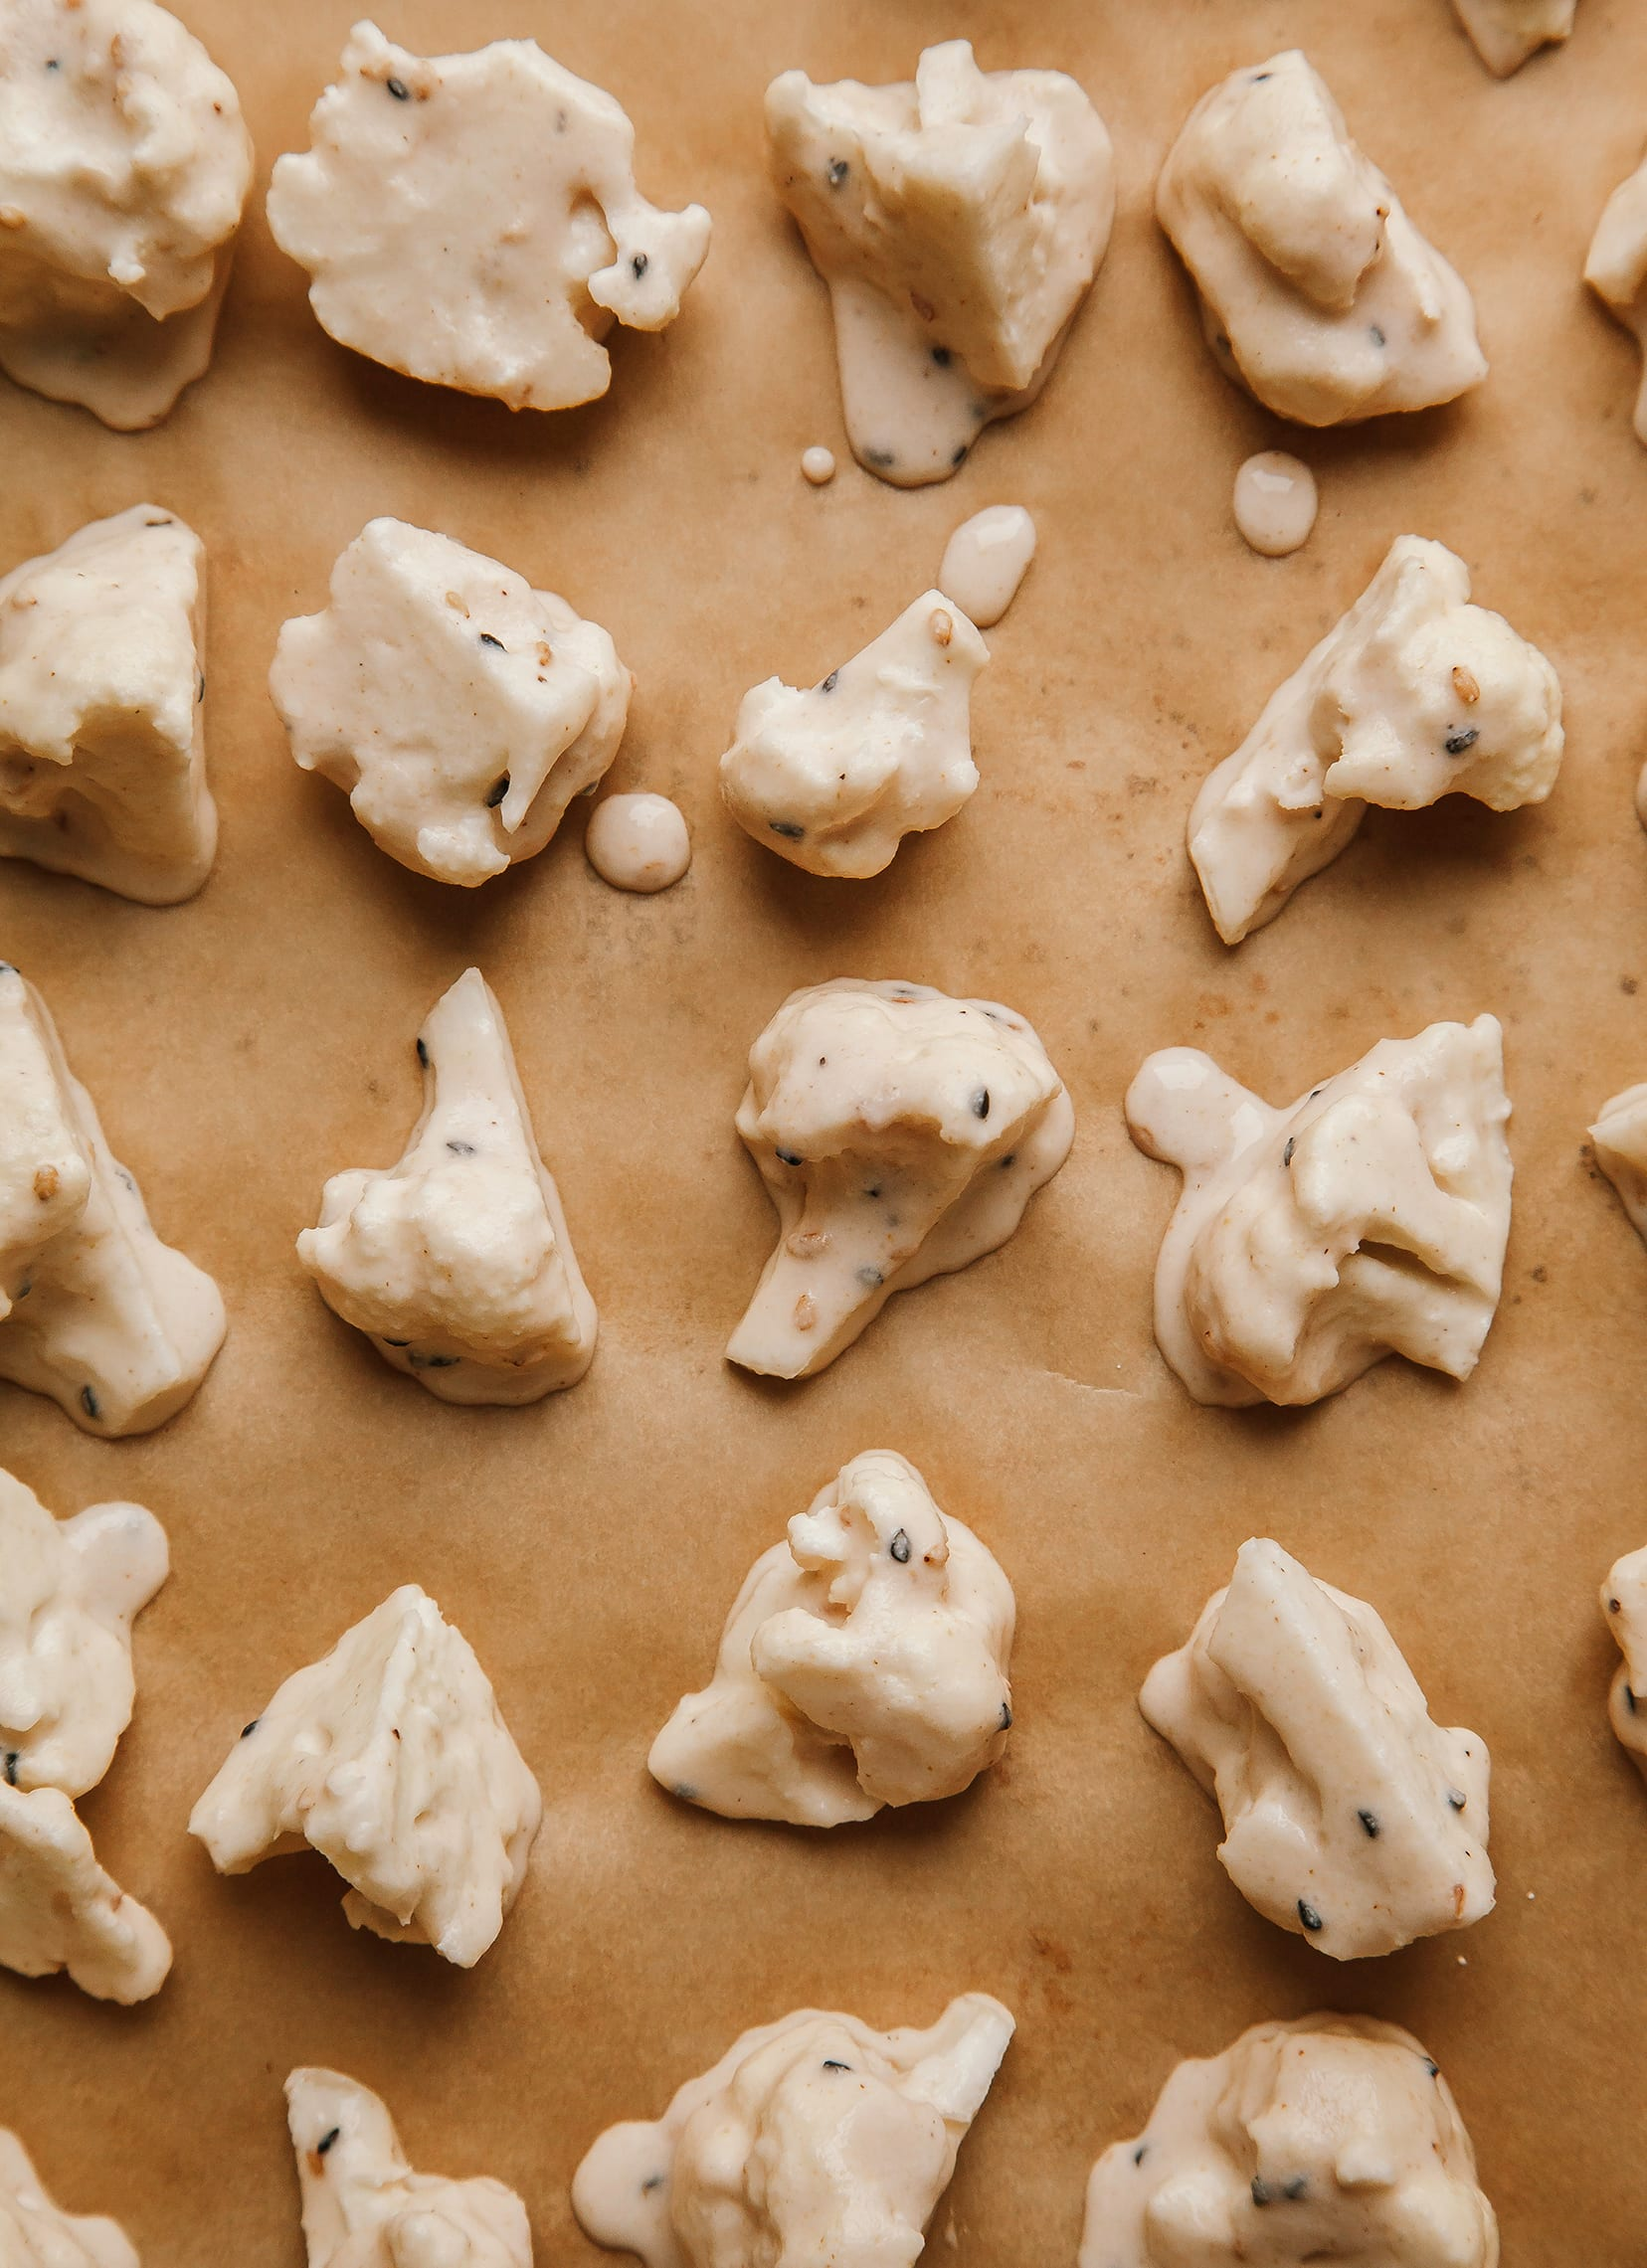 Image shows cauliflower florets coated in batter on a parchment-lined baking sheet.